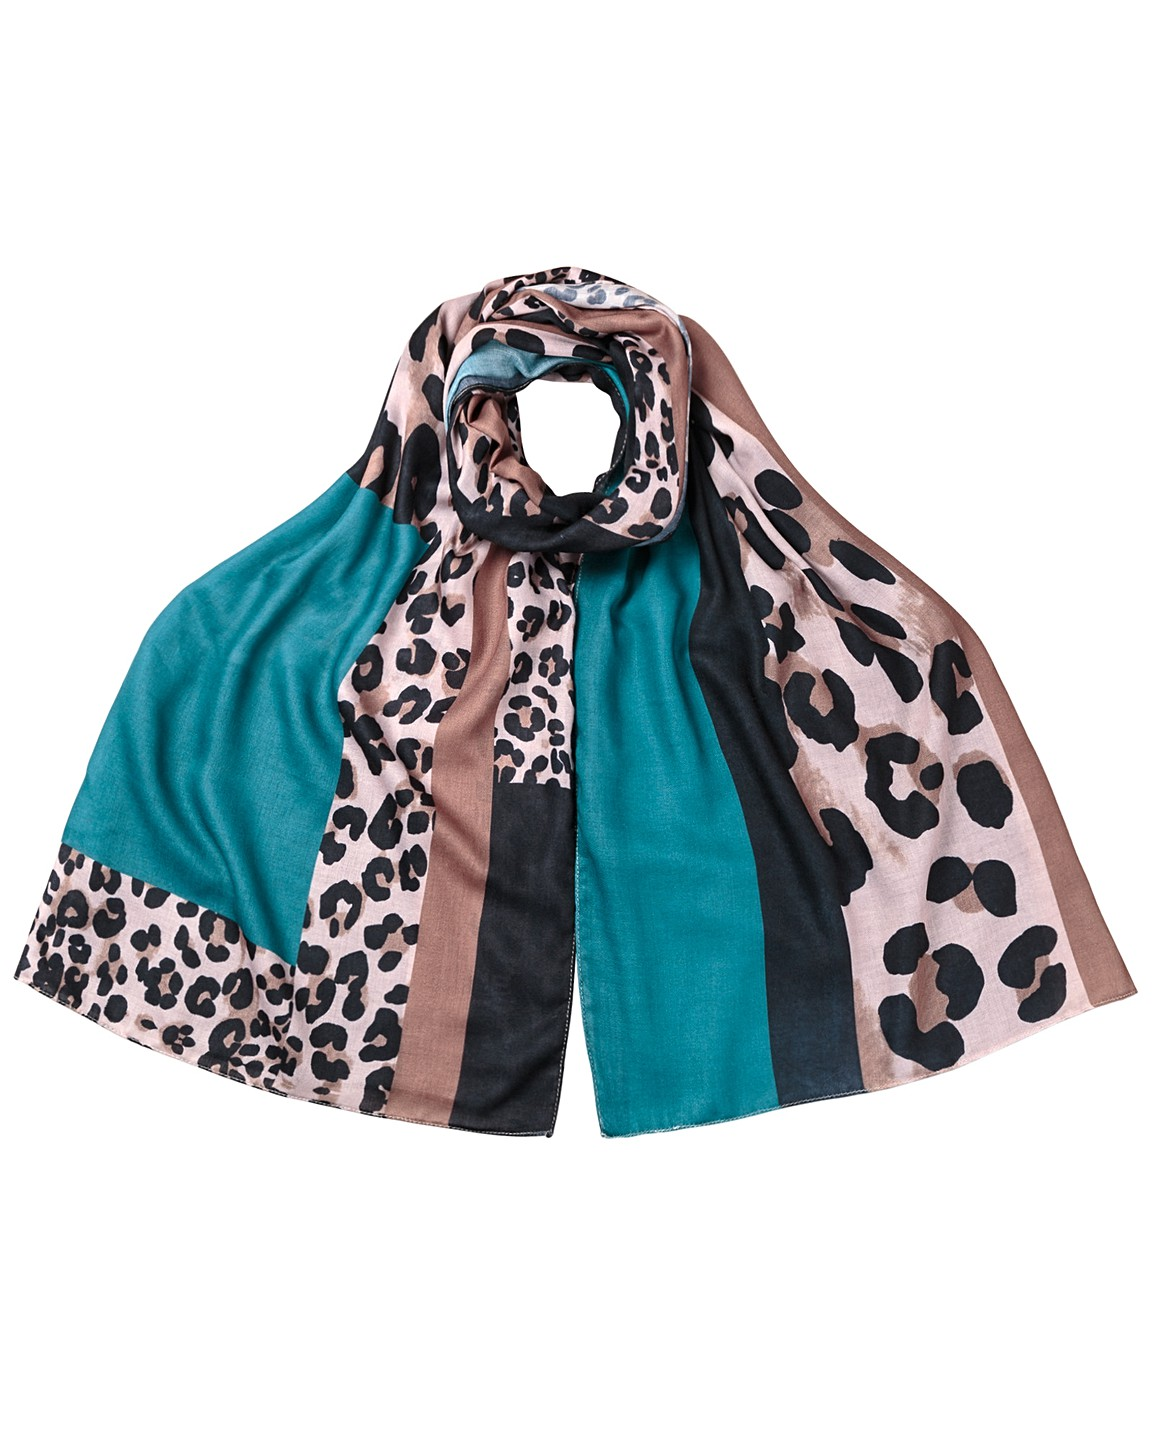 Oliver Bonas Animal Print & Teal Colour Block Scarf Online Only £25